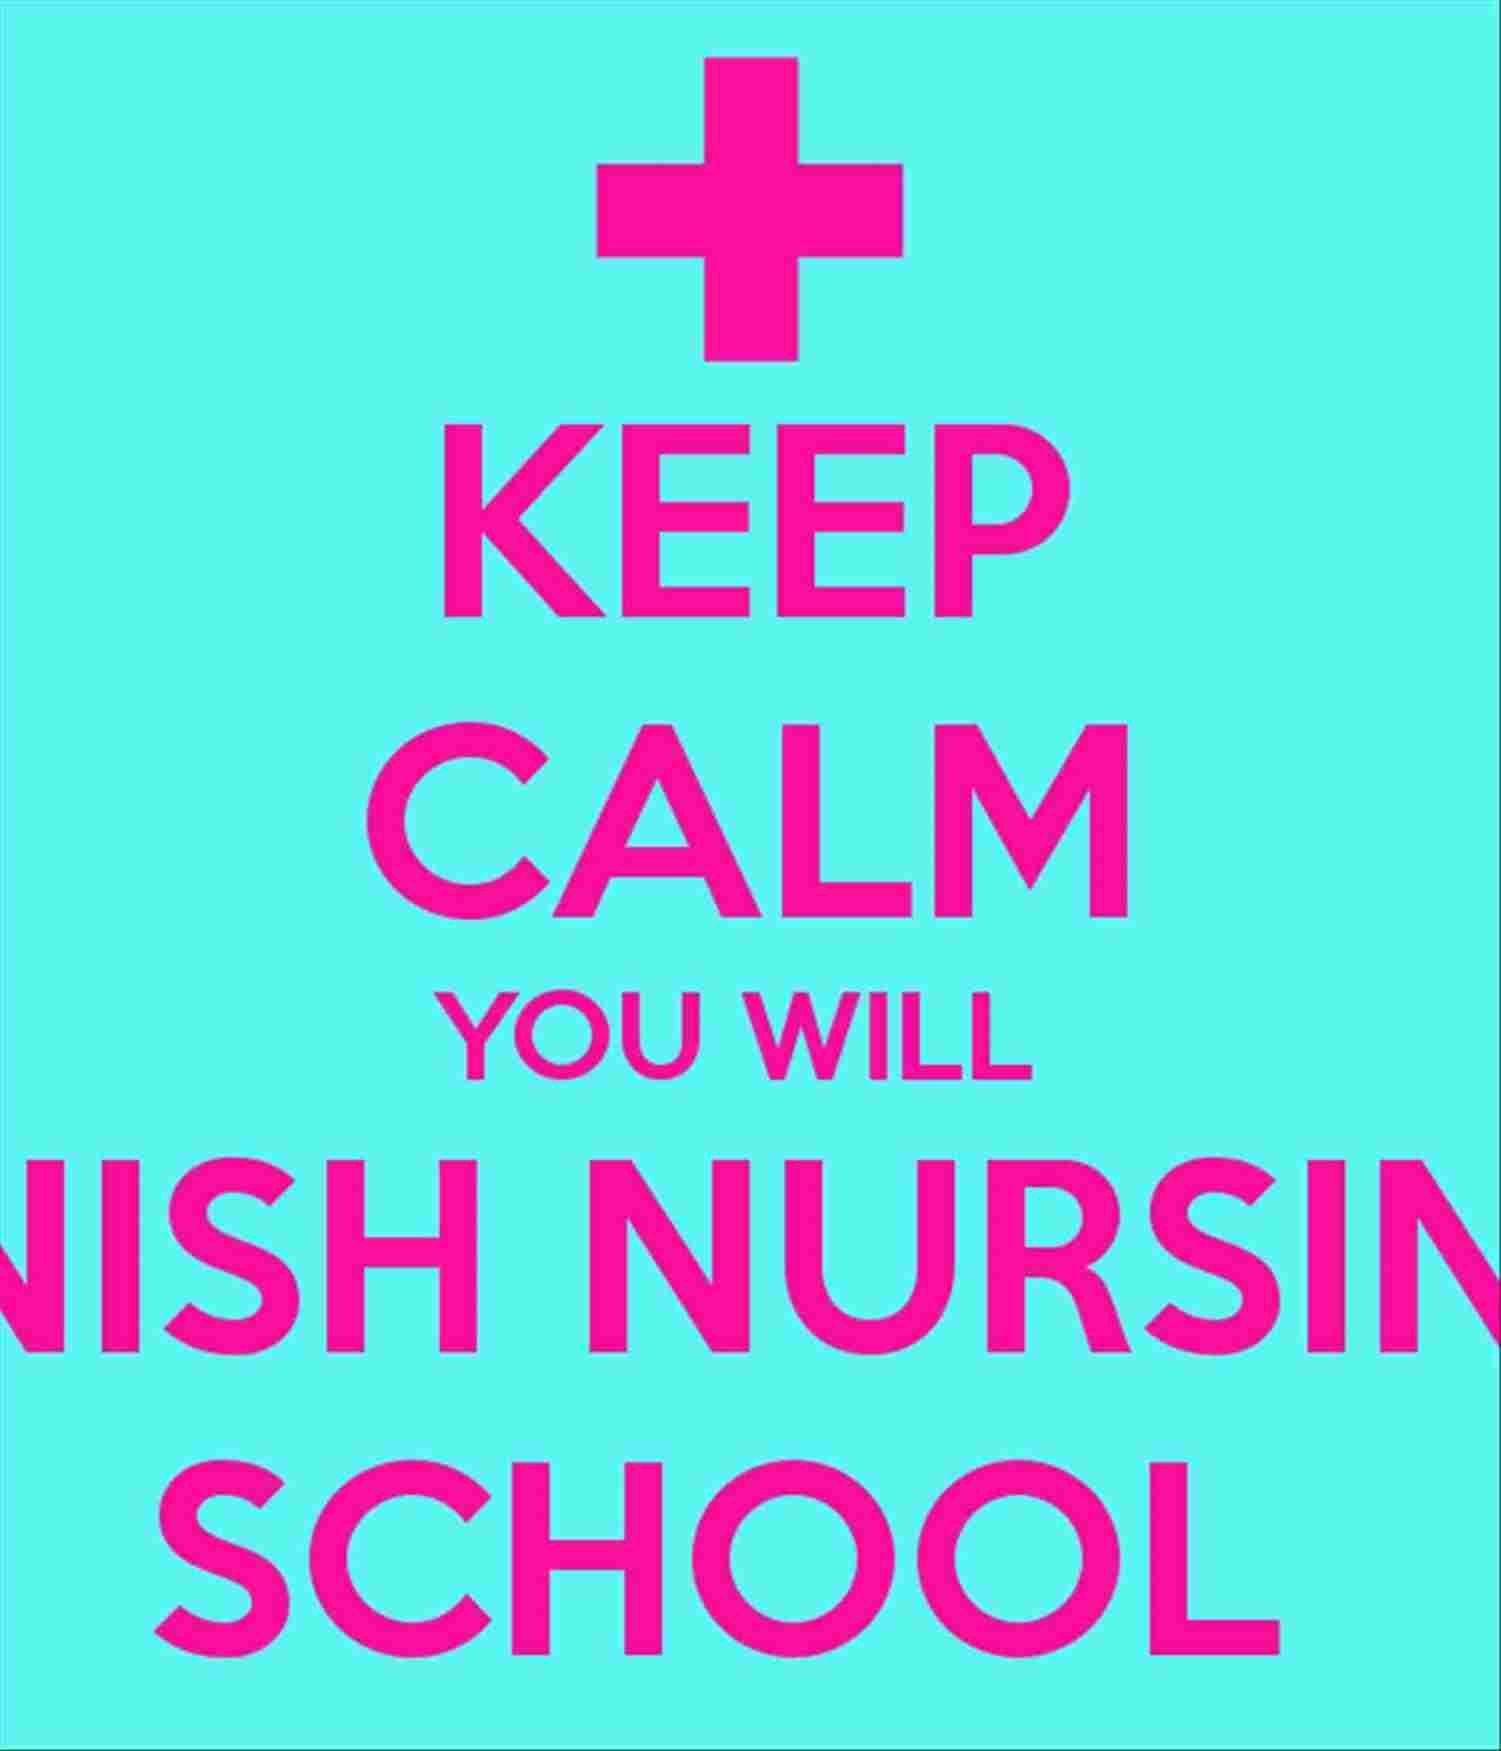 Nursing Quotes Please Tag Share Comment On The Picture Nurse Nurses Nursing Realnurse Nurse Quotes Nursing Student Humor Nursing Student Quotes